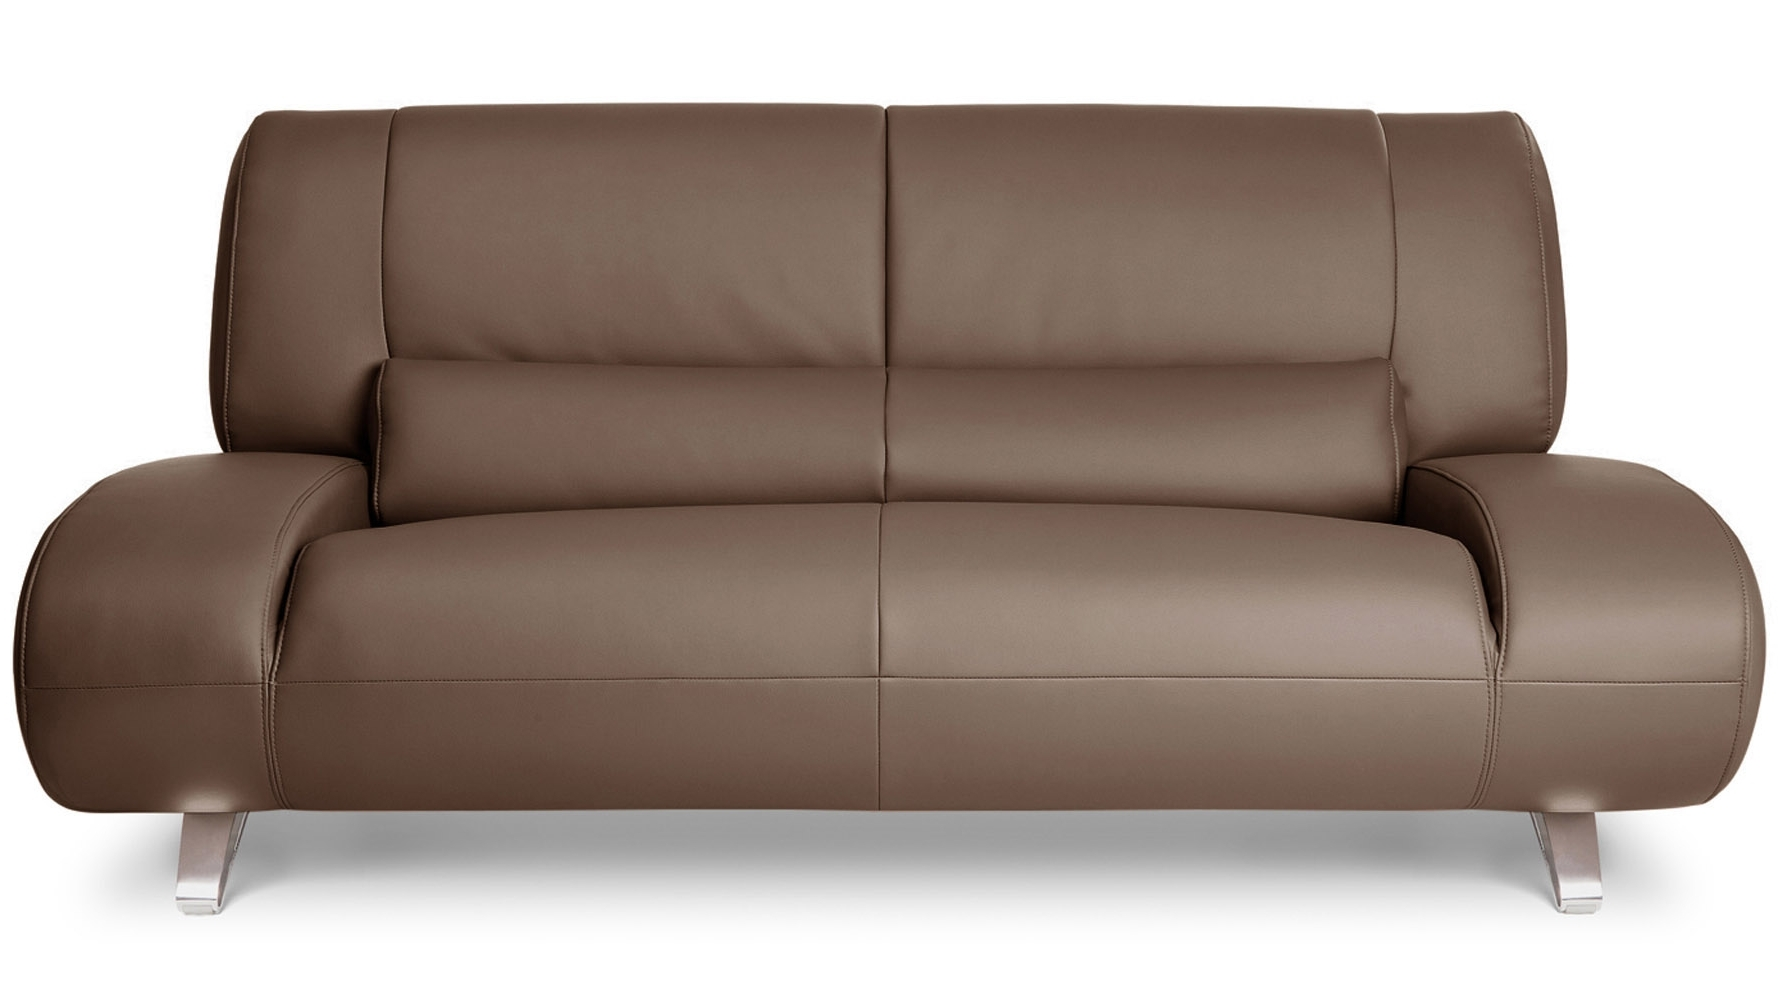 Fashionable Aspen Leather Sofas For Brown Aspen Leather Sofa Set With Loveseat And Chair (View 6 of 20)